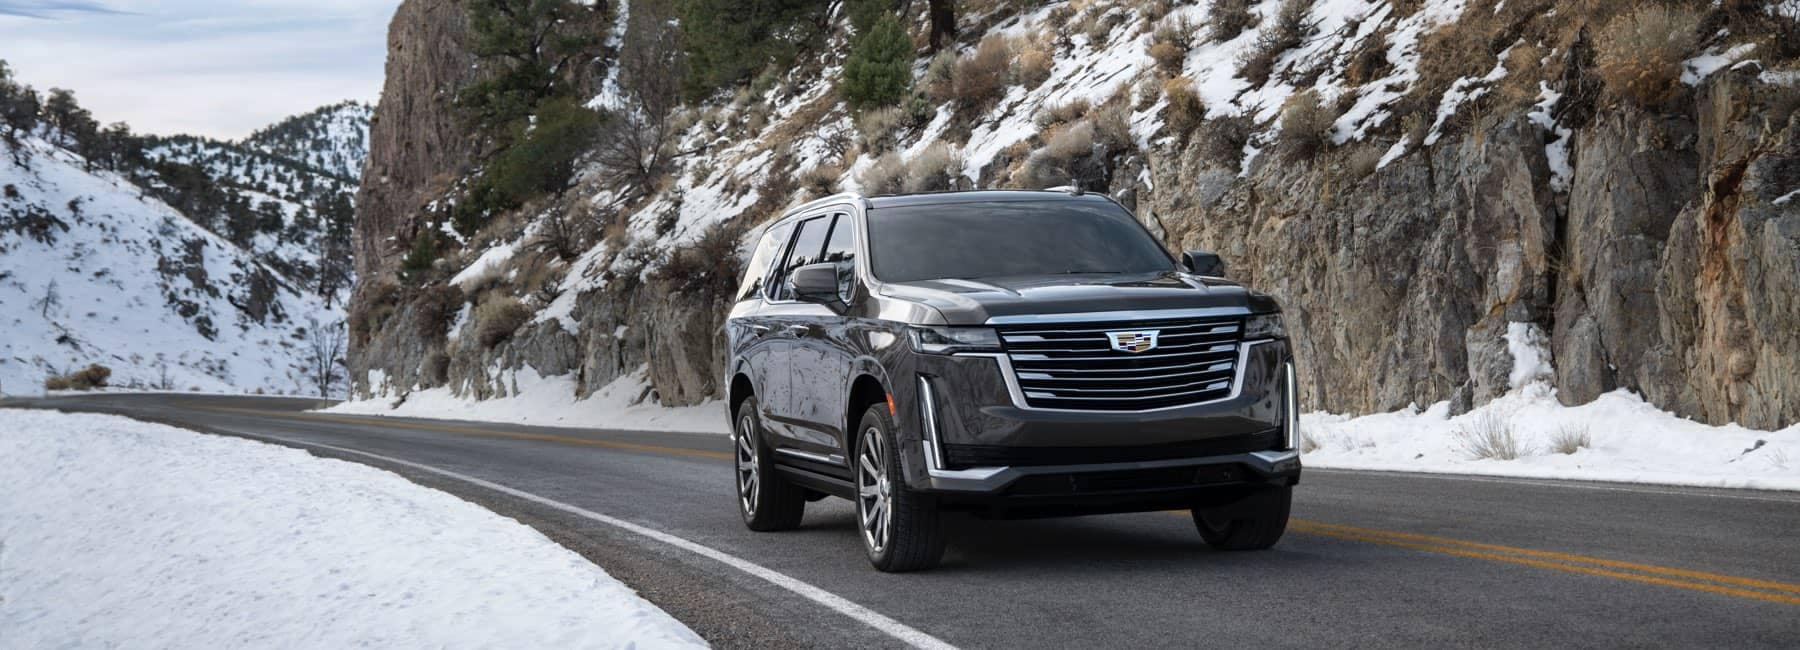 2021 Cadillac Excalade driving down a snowy road